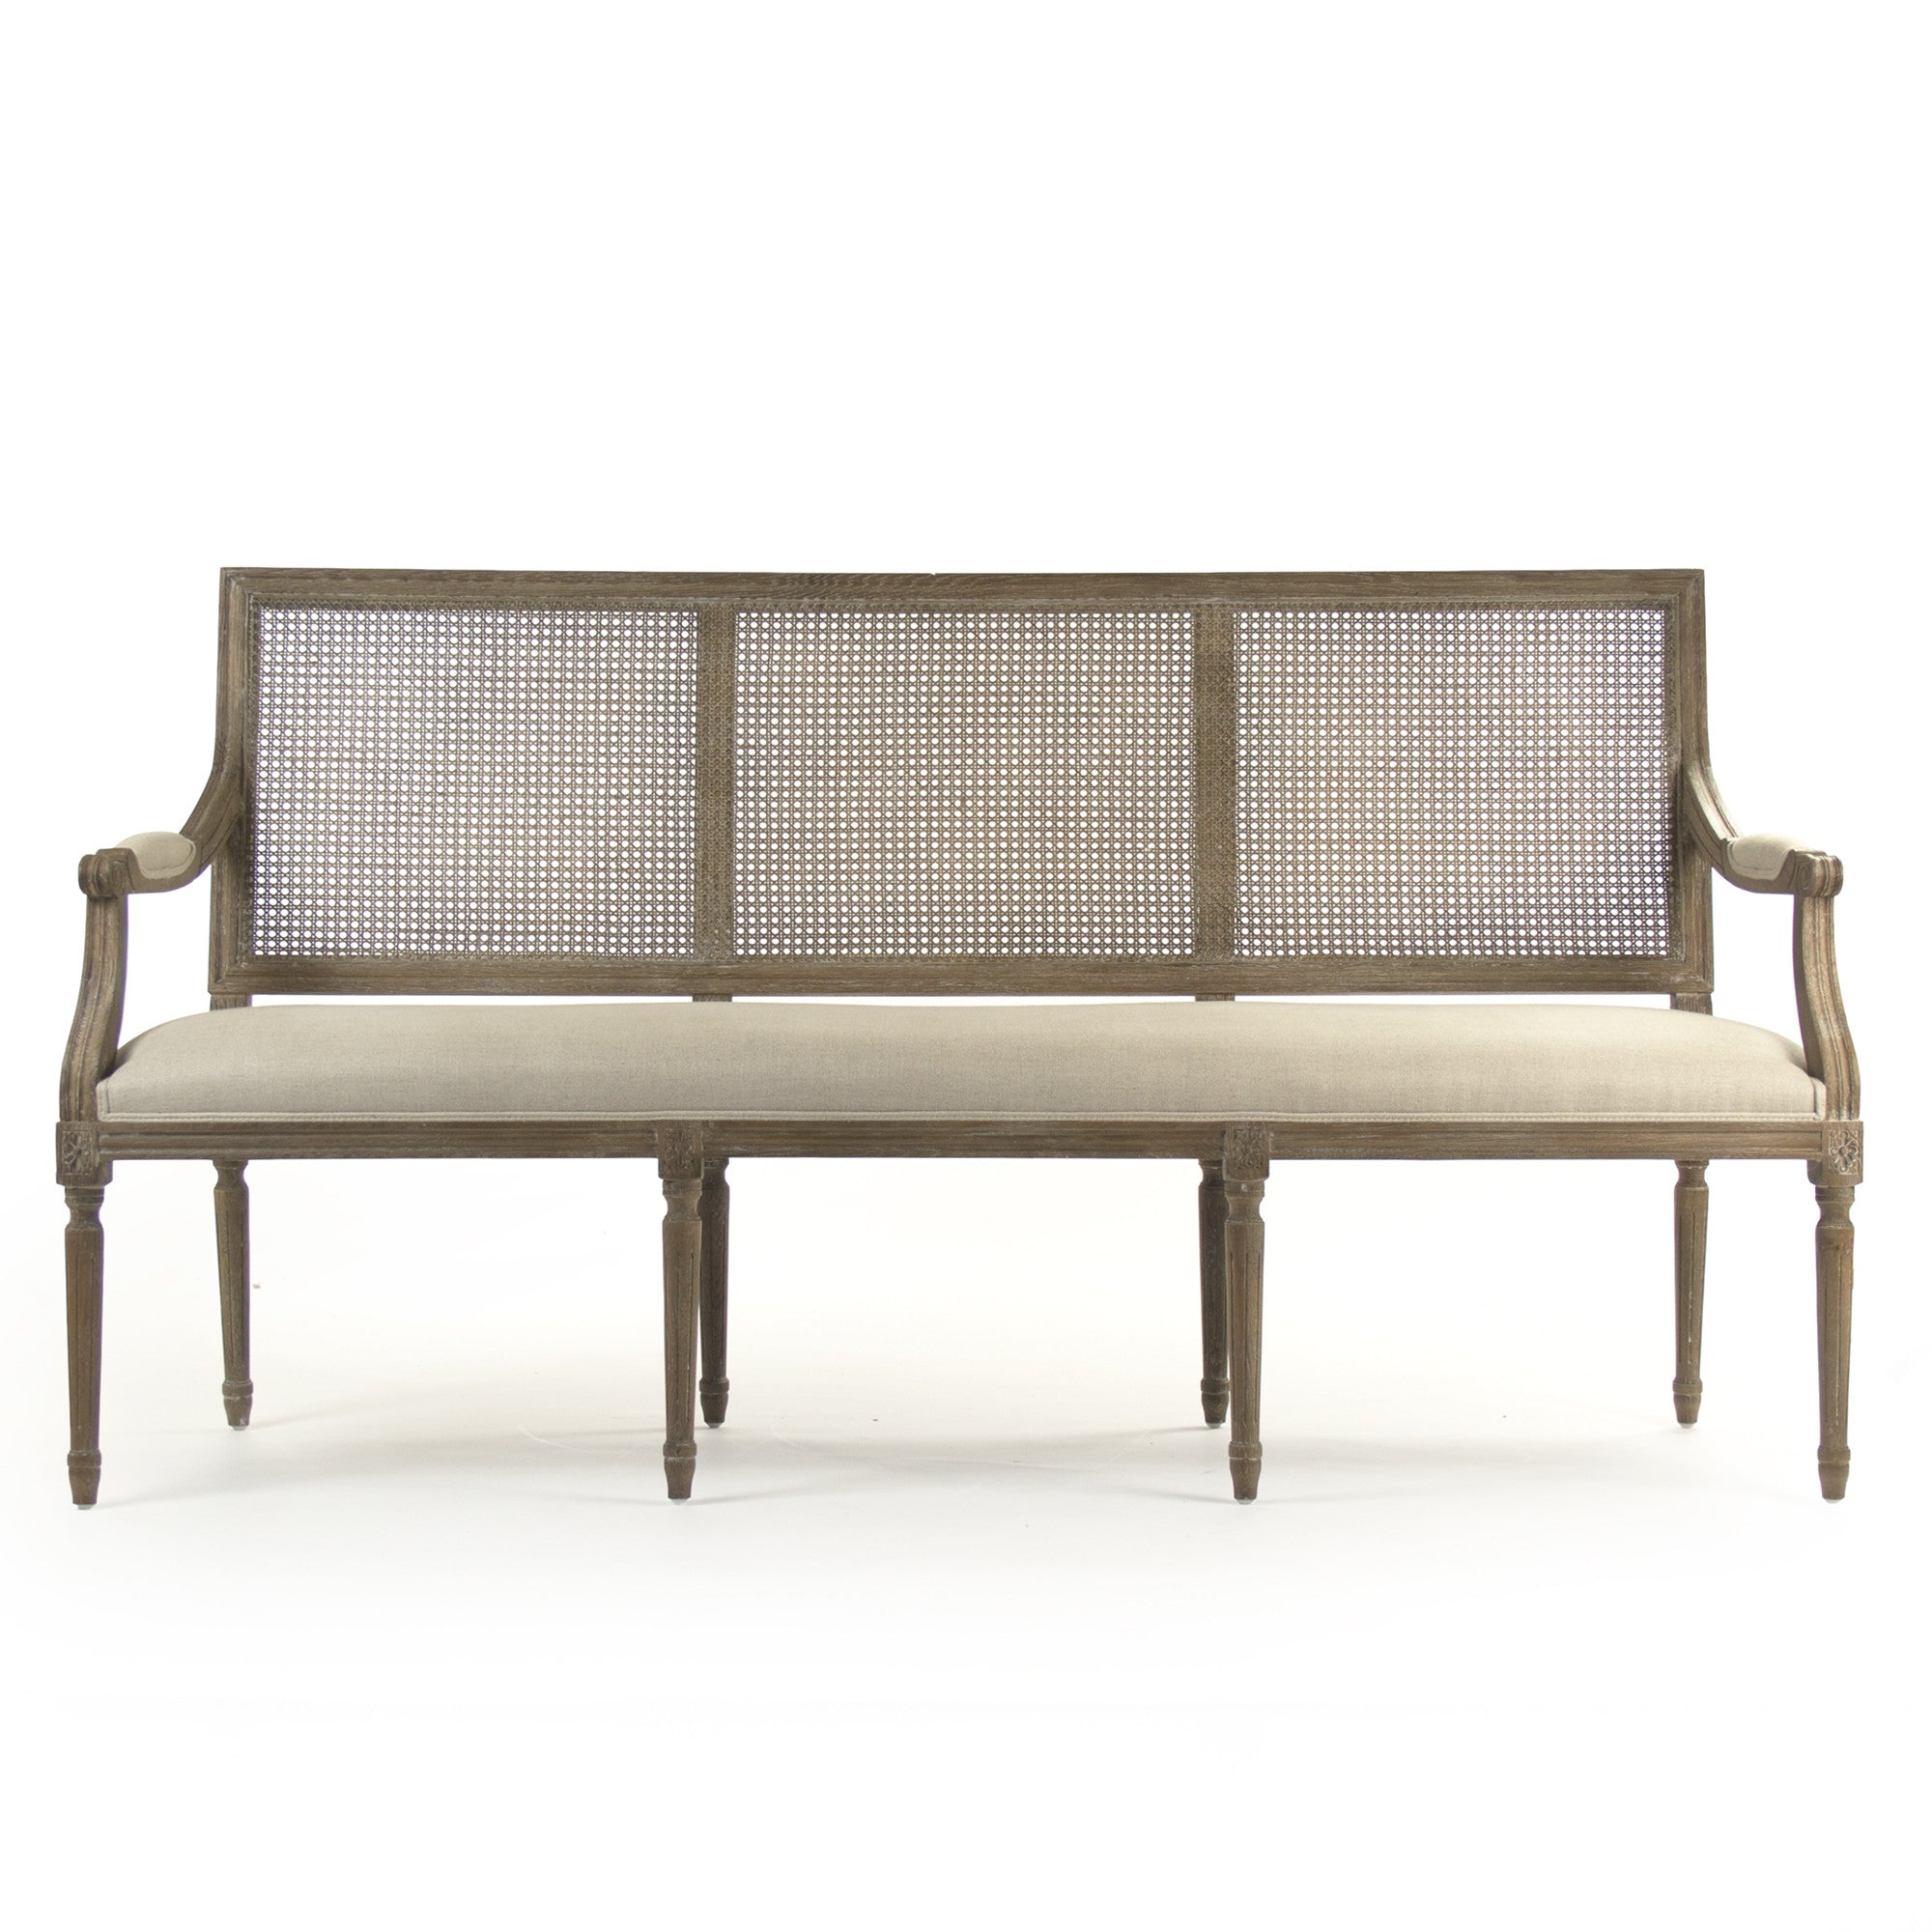 Zentique Louis Cane Back Bench Distressed Gray Oak